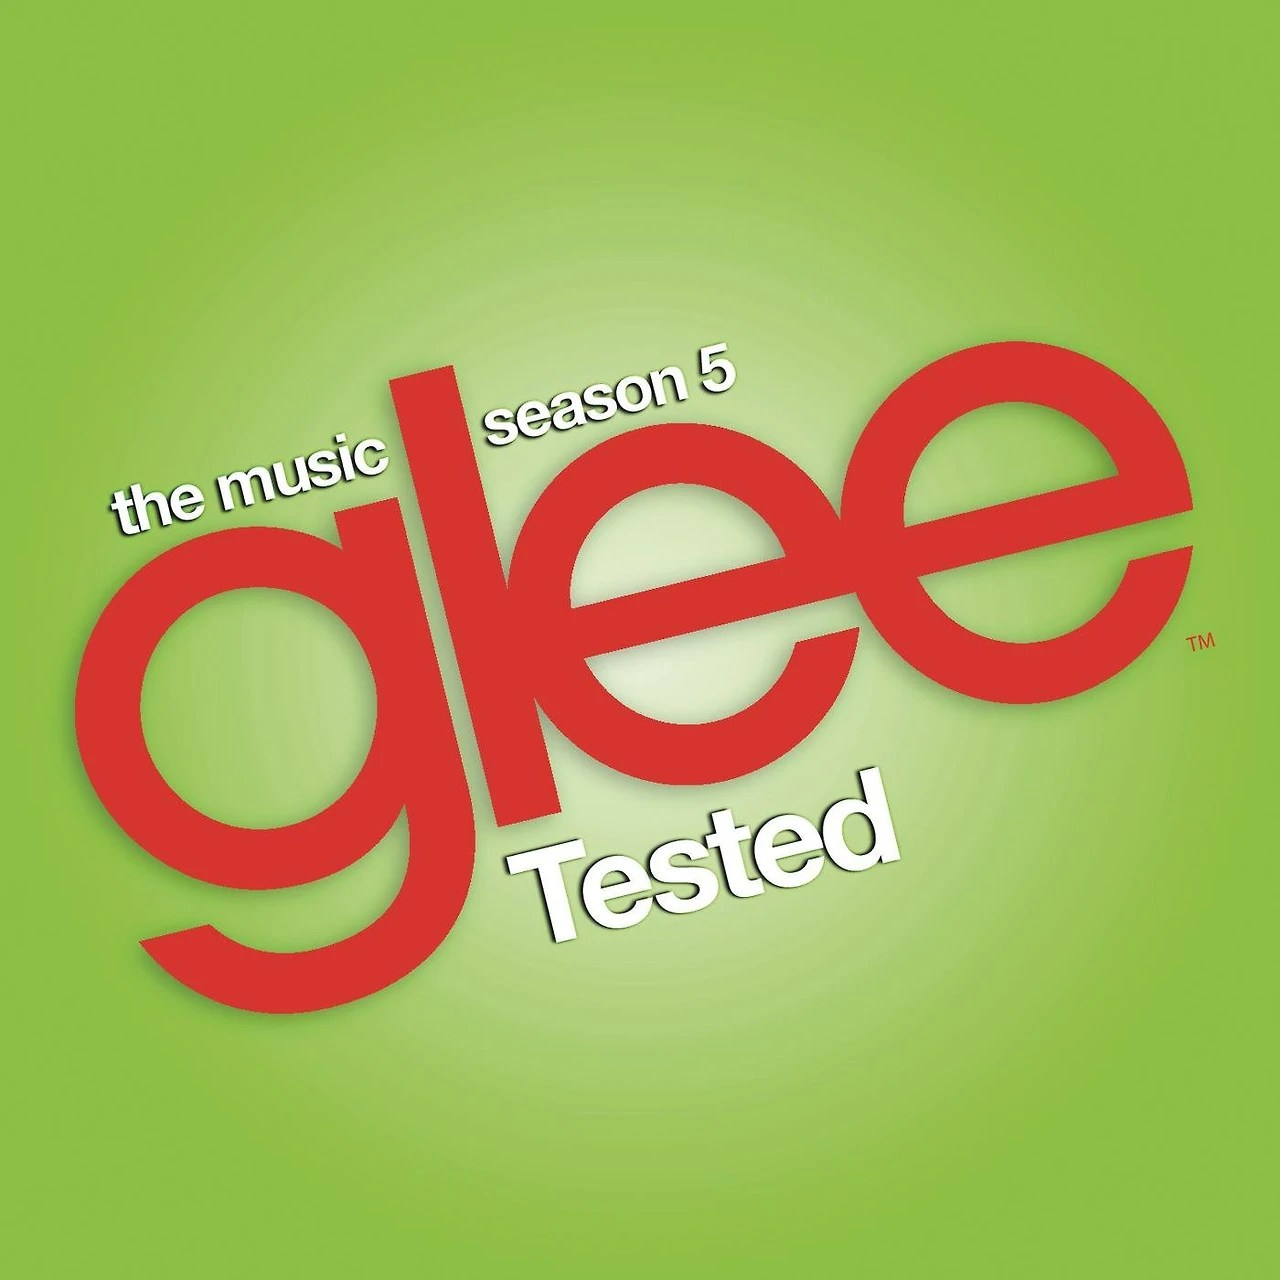 The Music Ep Tested Ep Glee Tv Show Wiki Fandom Powered By Wikia